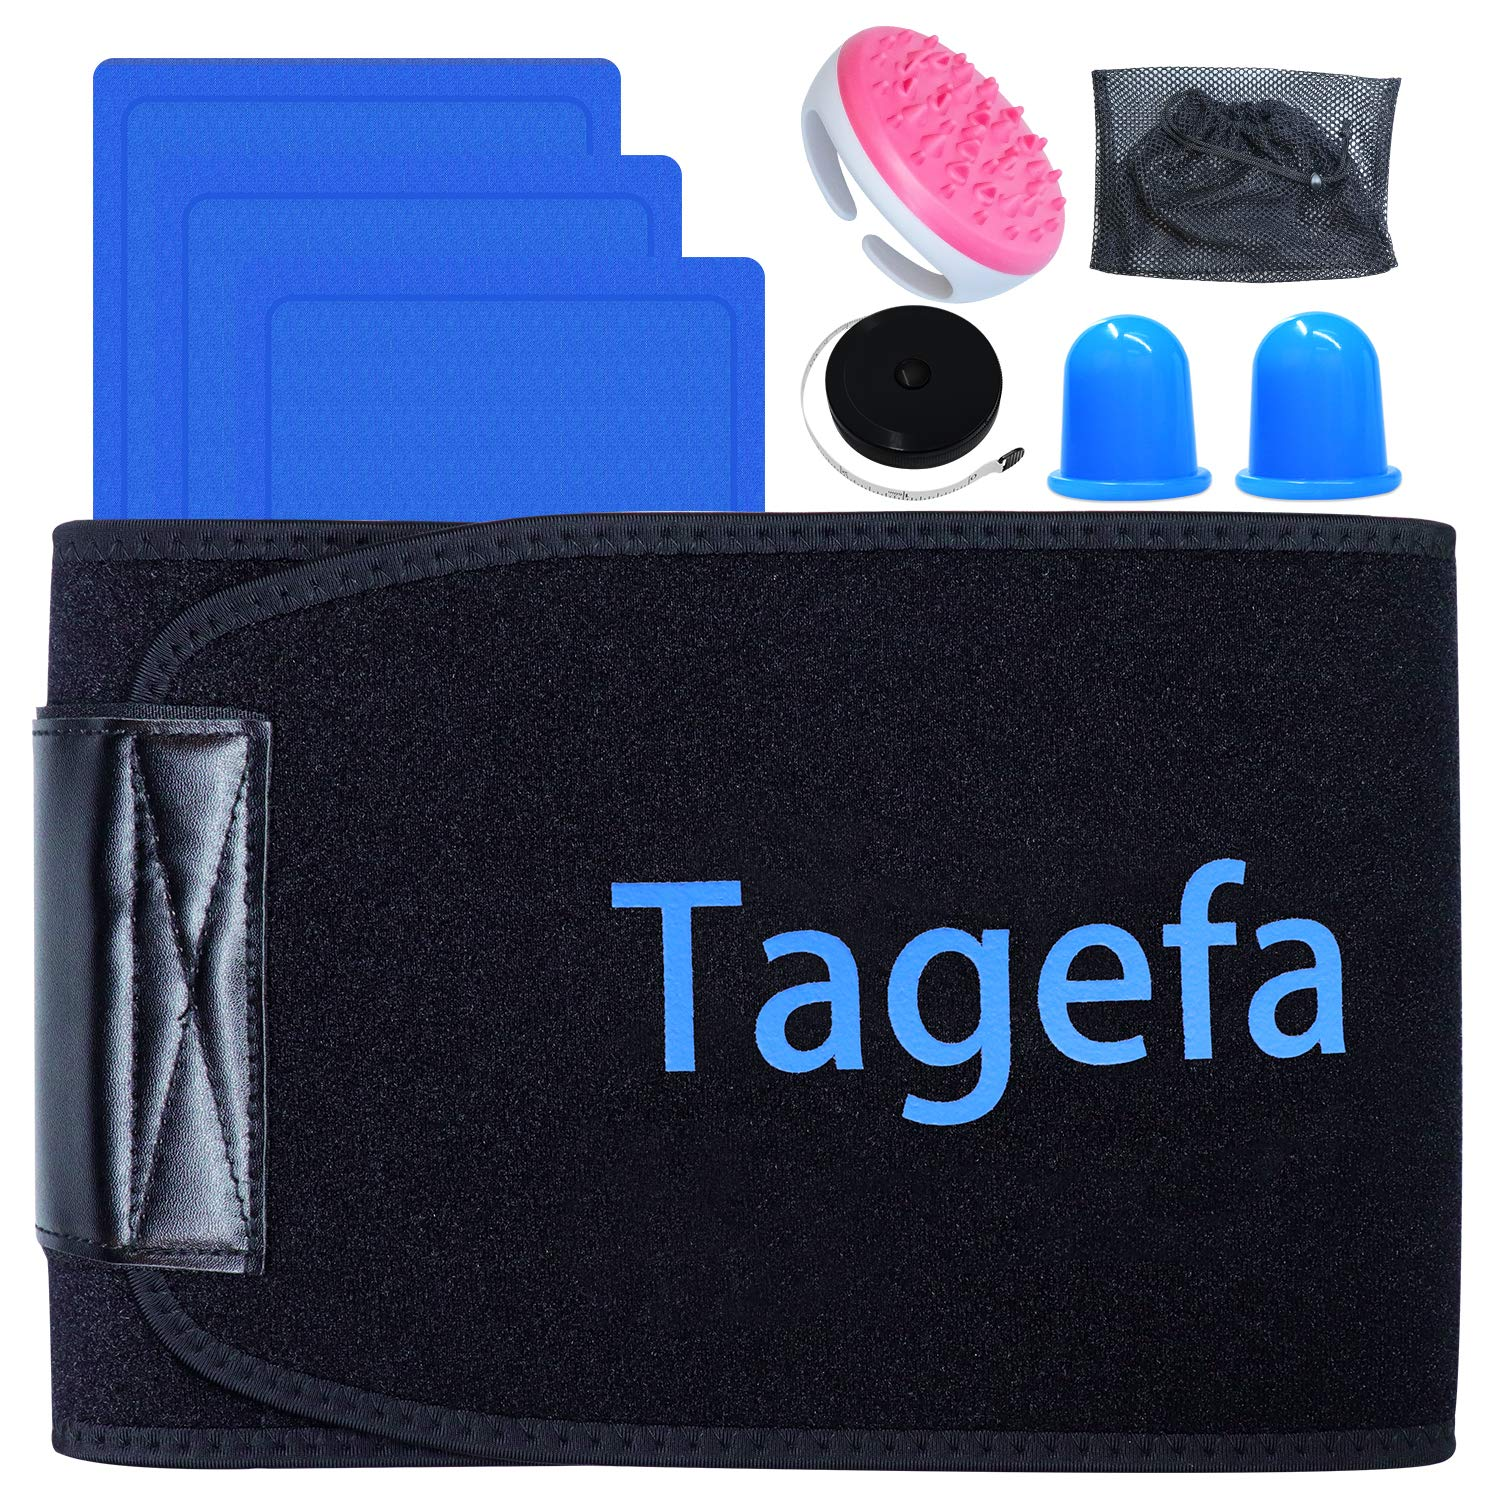 Tagefa Fat Freezing Body Sculpting Waist Trimmer, Lose Stubborn Belly Fat by Freezing Fat Cells at Home, Stomach Wraps for Weight Loss with 3 Cold Gel Packs, Massage Kit, Storage Bag